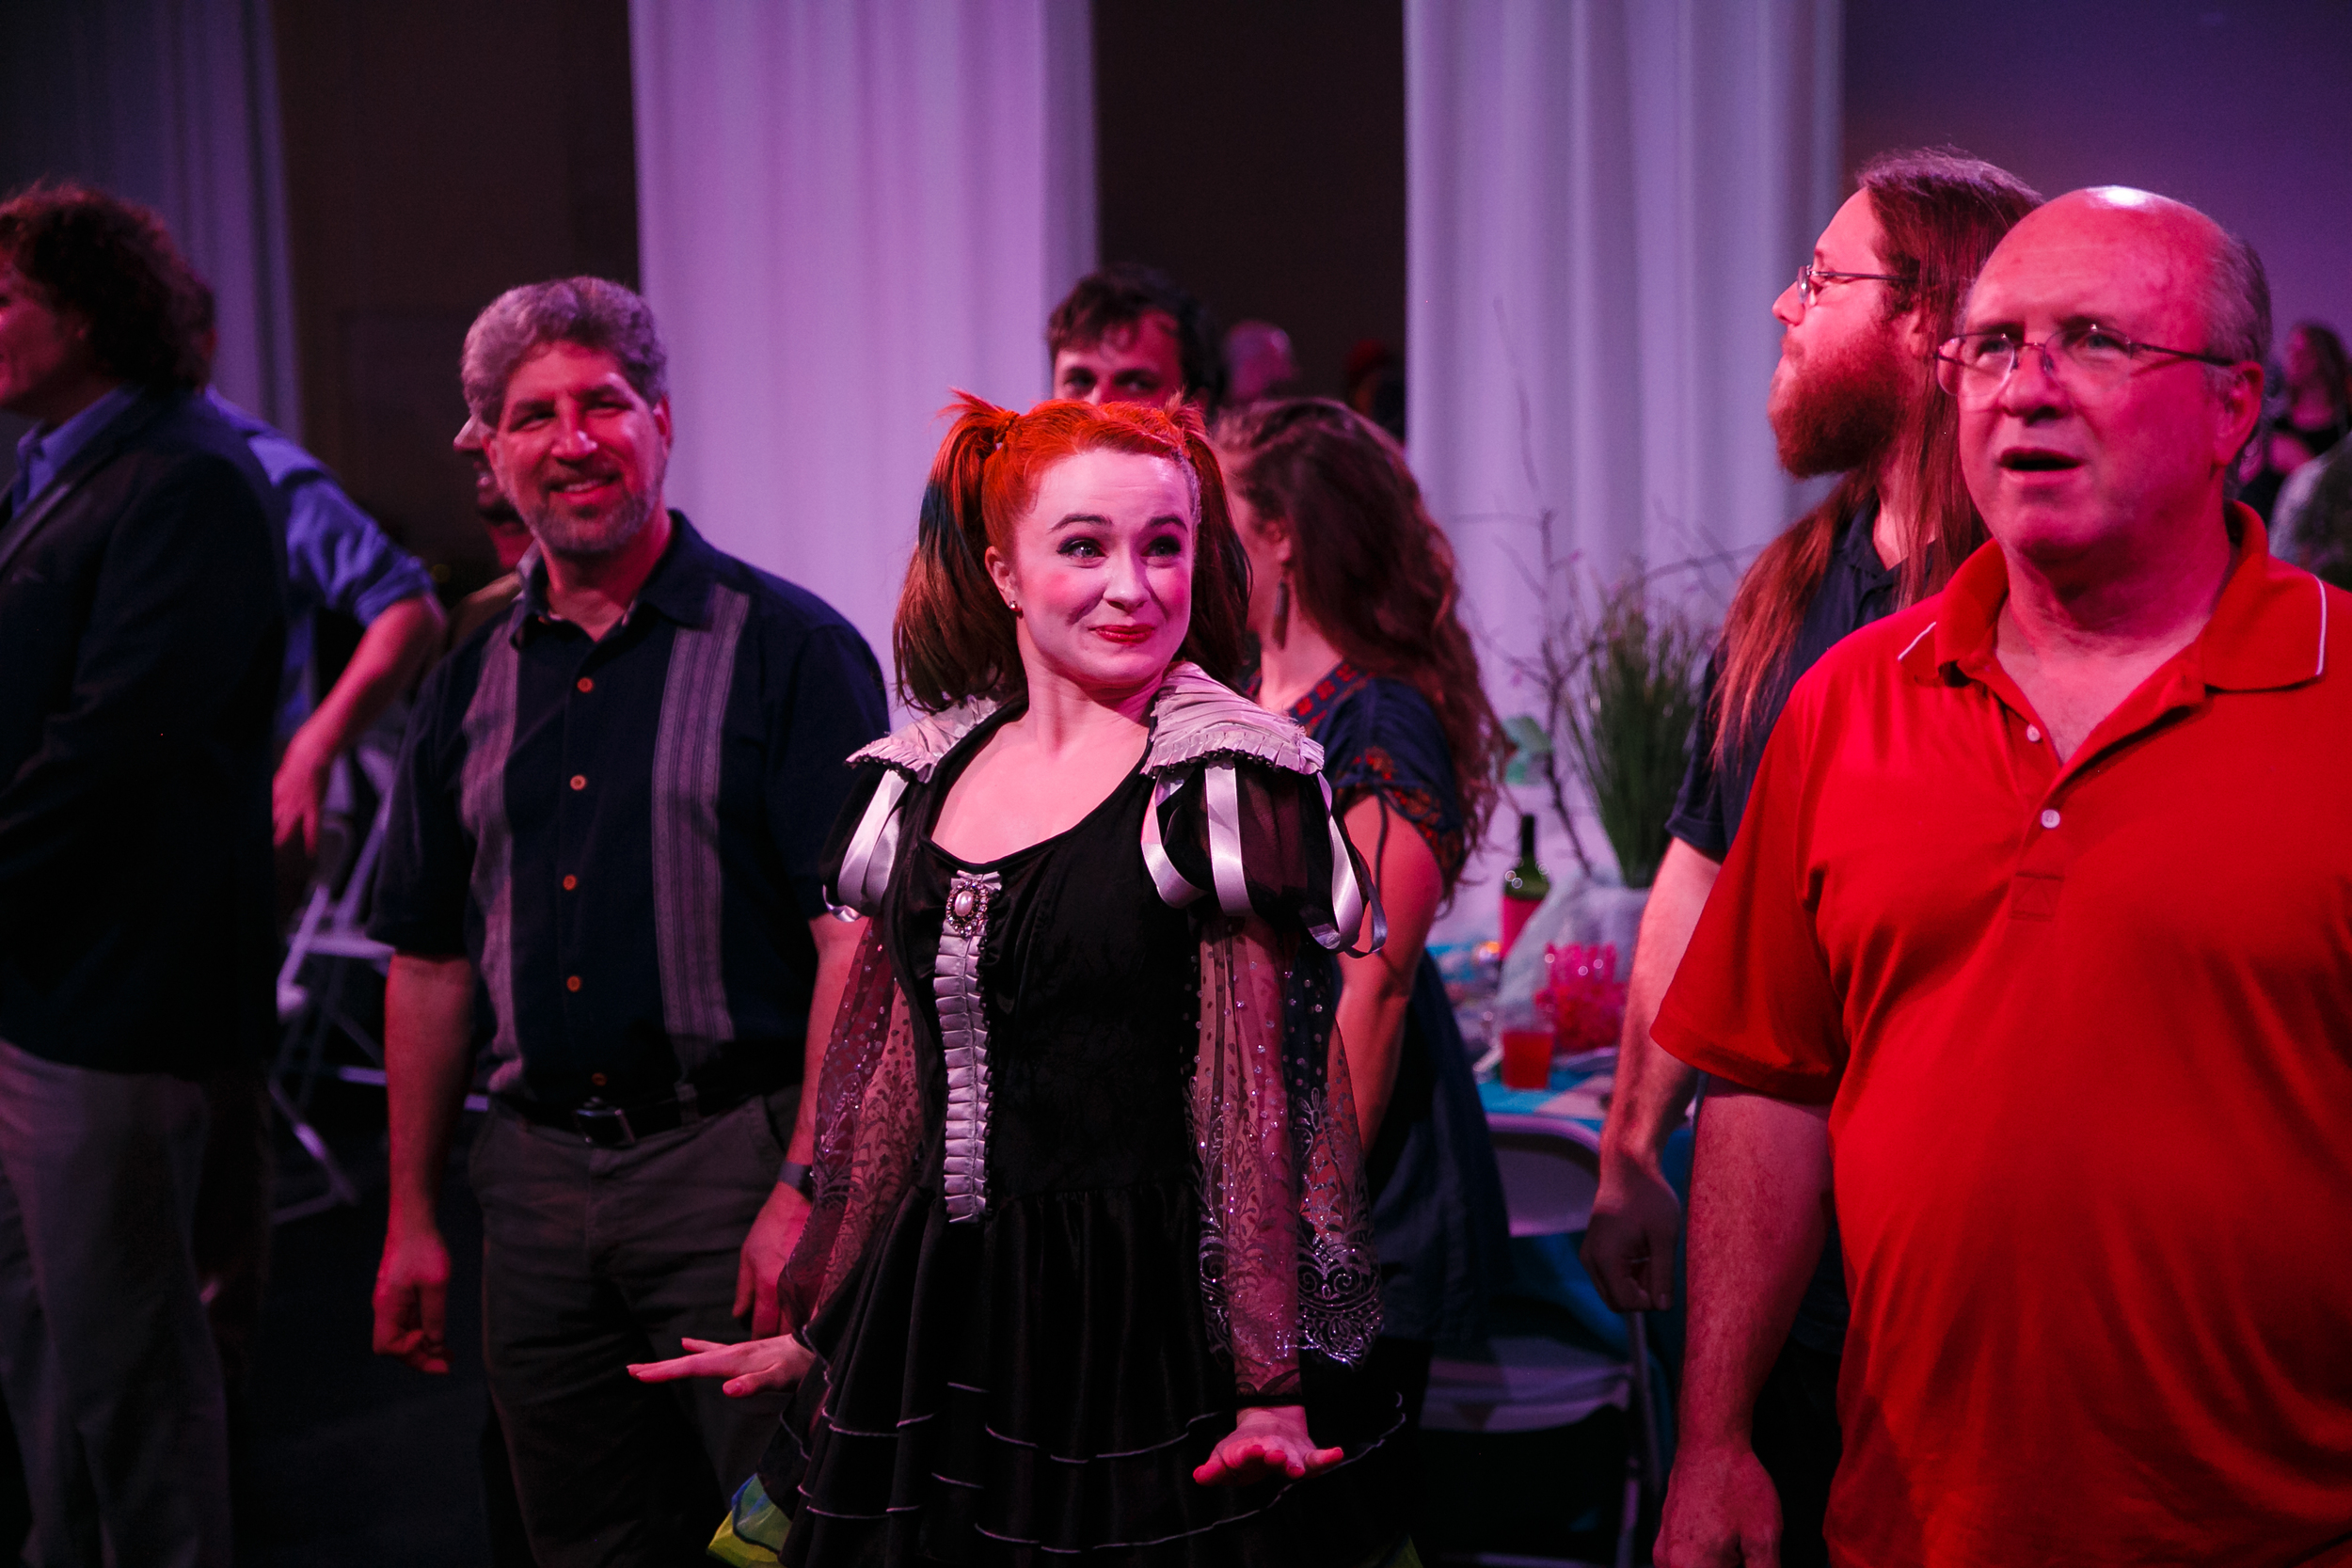 Dancers and audience members interact at 1700s European immersive theater performance in Austin TX